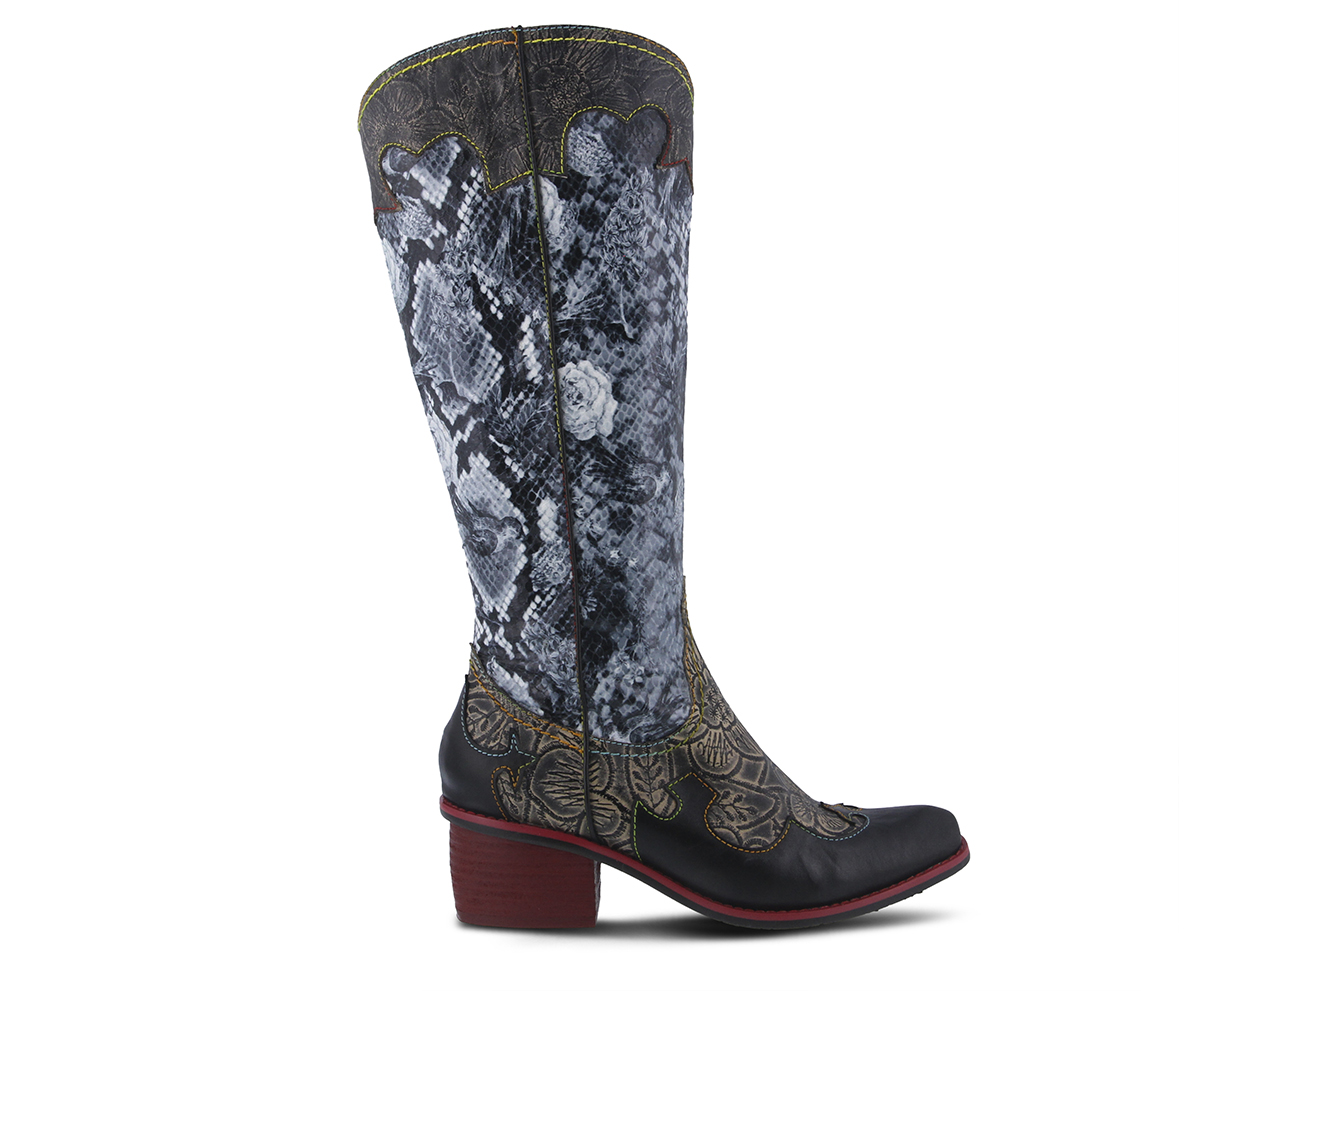 L'Artiste Rodeo Women's Boots (Black Leather)